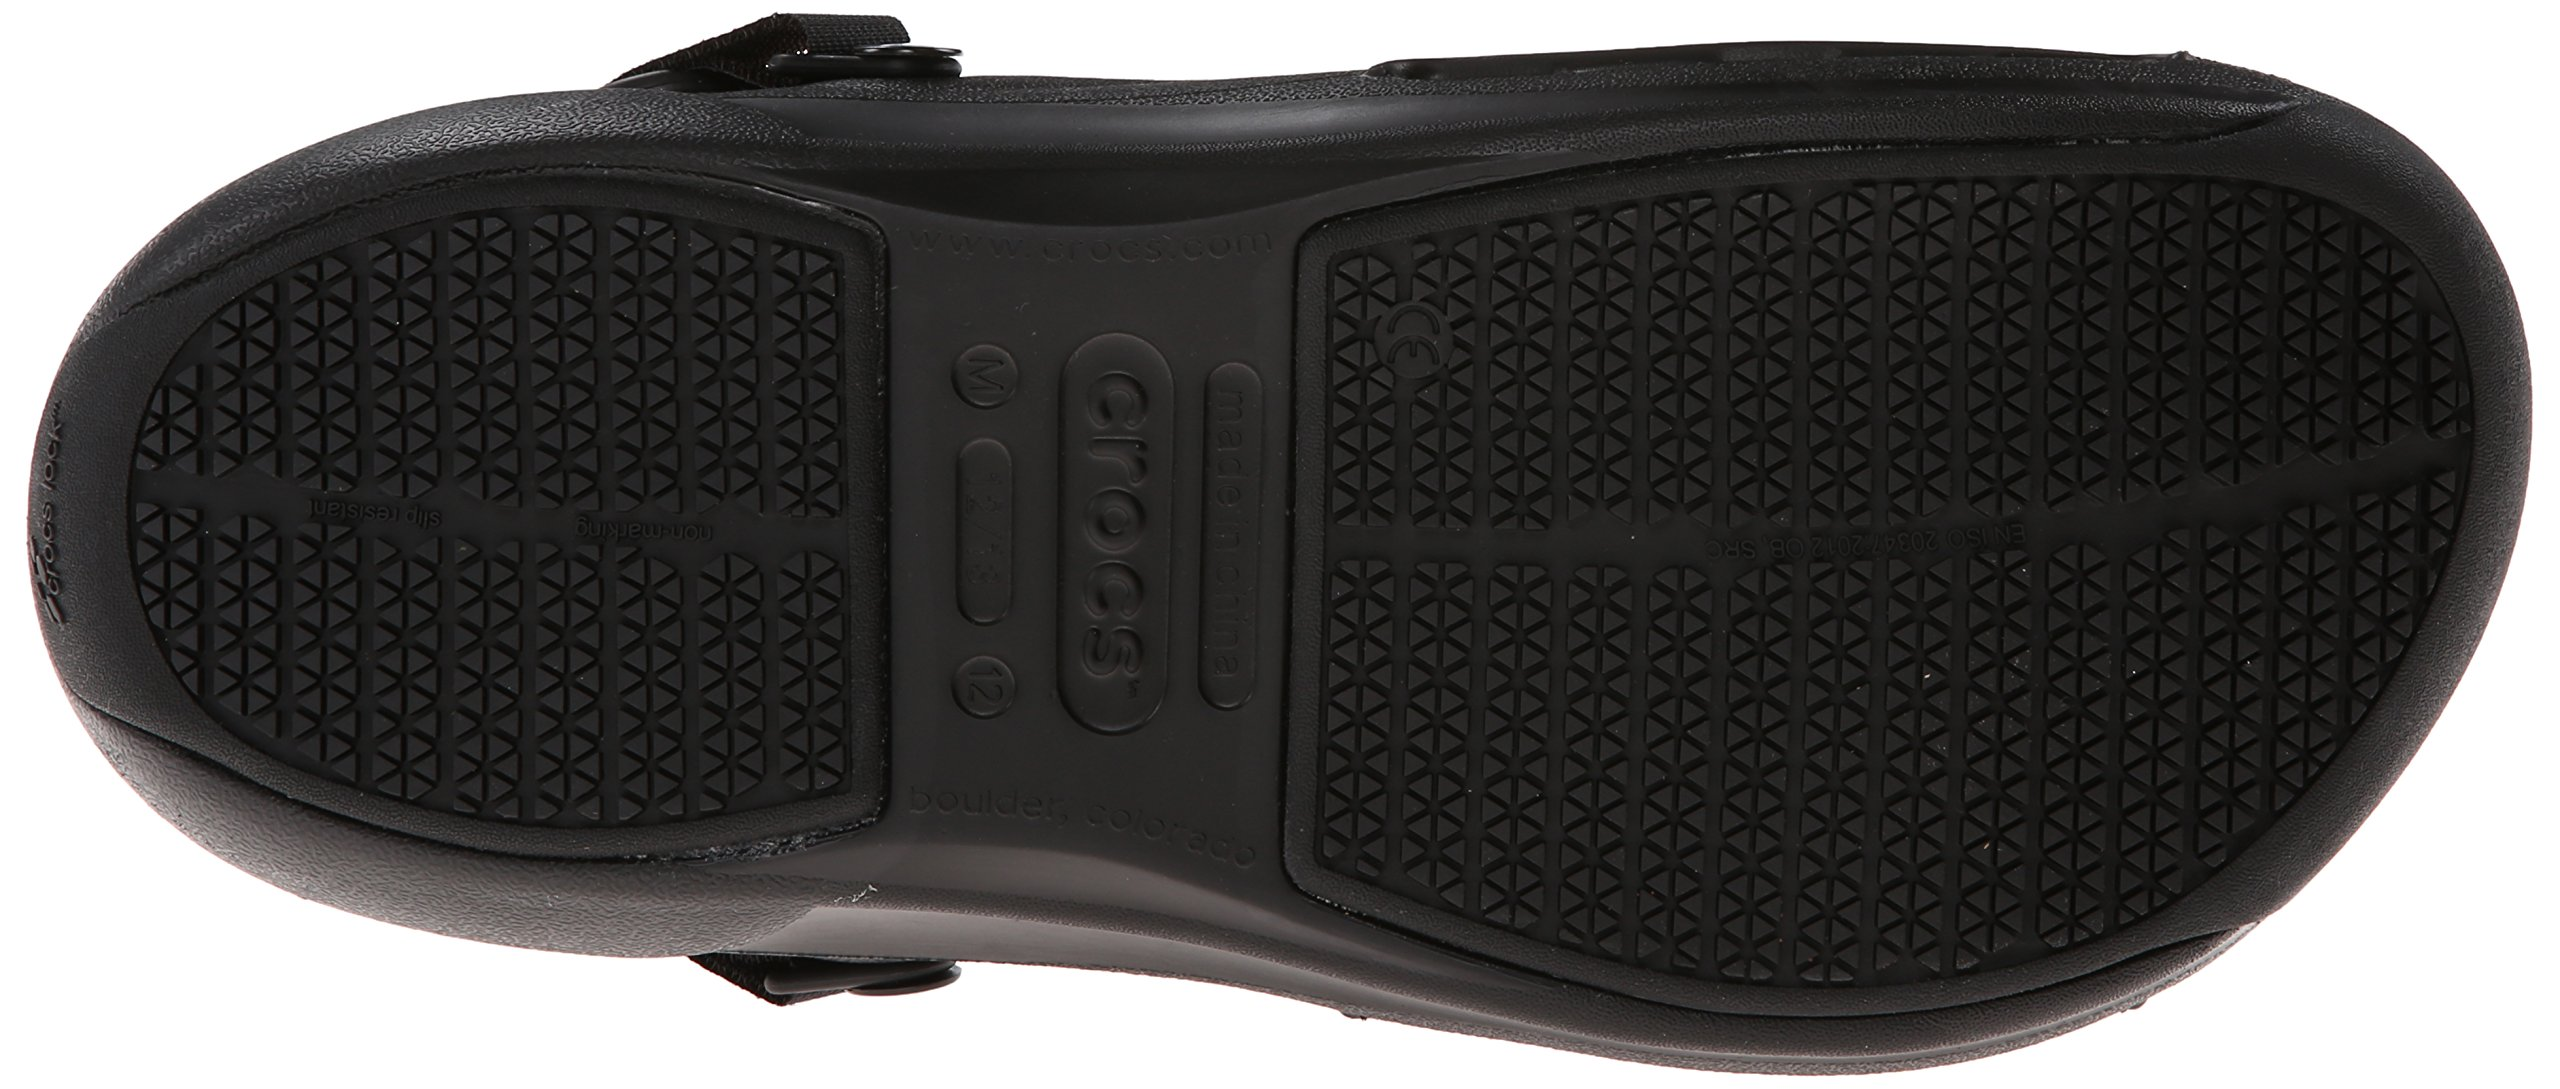 Crocs Men's 15010 Bistro Pro Clog,Black,11 M US by Crocs (Image #3)